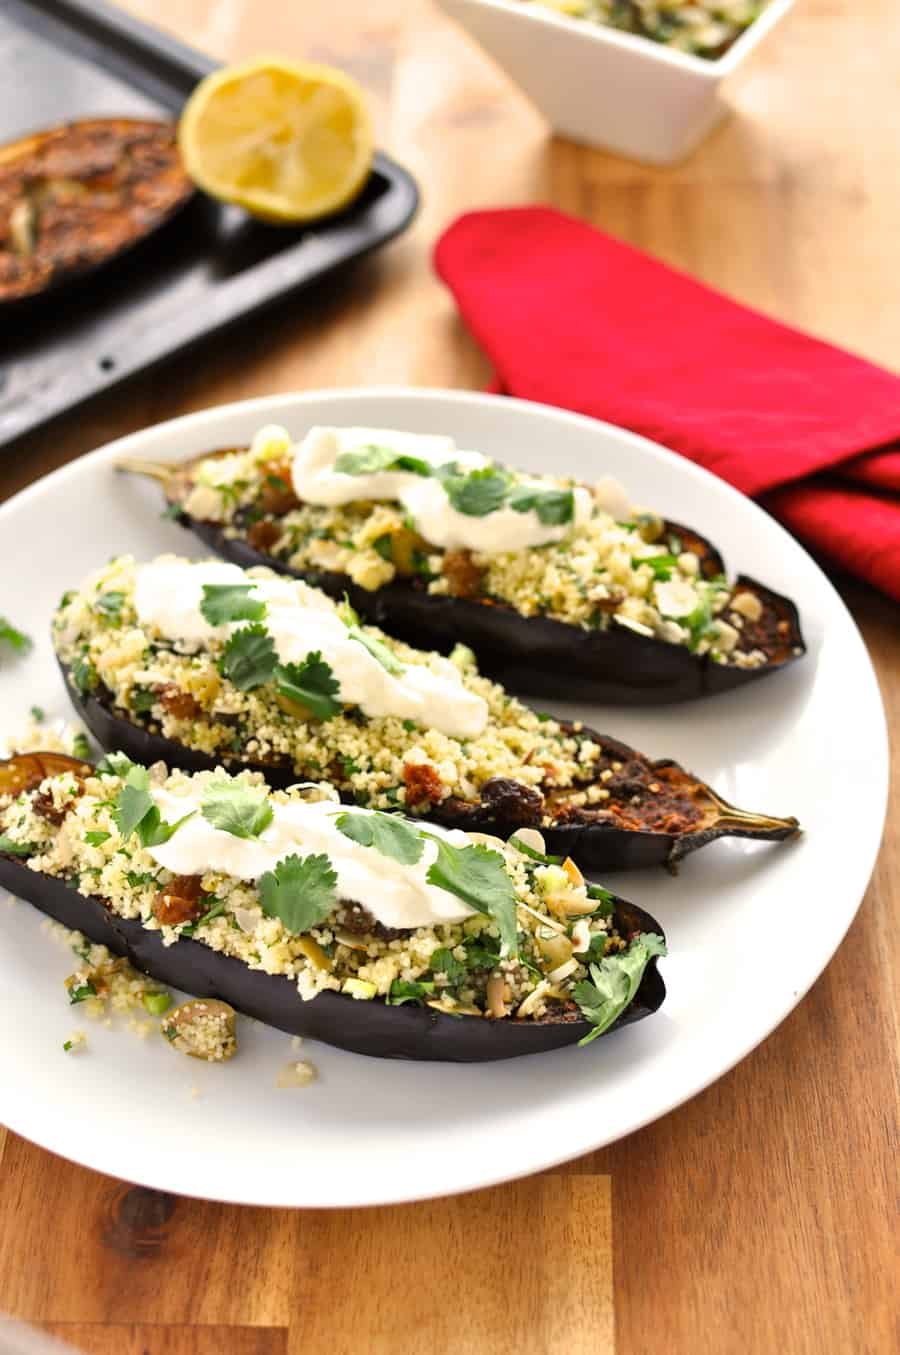 Middle Easter Roasted Eggplant with Couscous - 15 min prep for this fragrant, melt-in-your-mouth aubergine with fresh couscous.